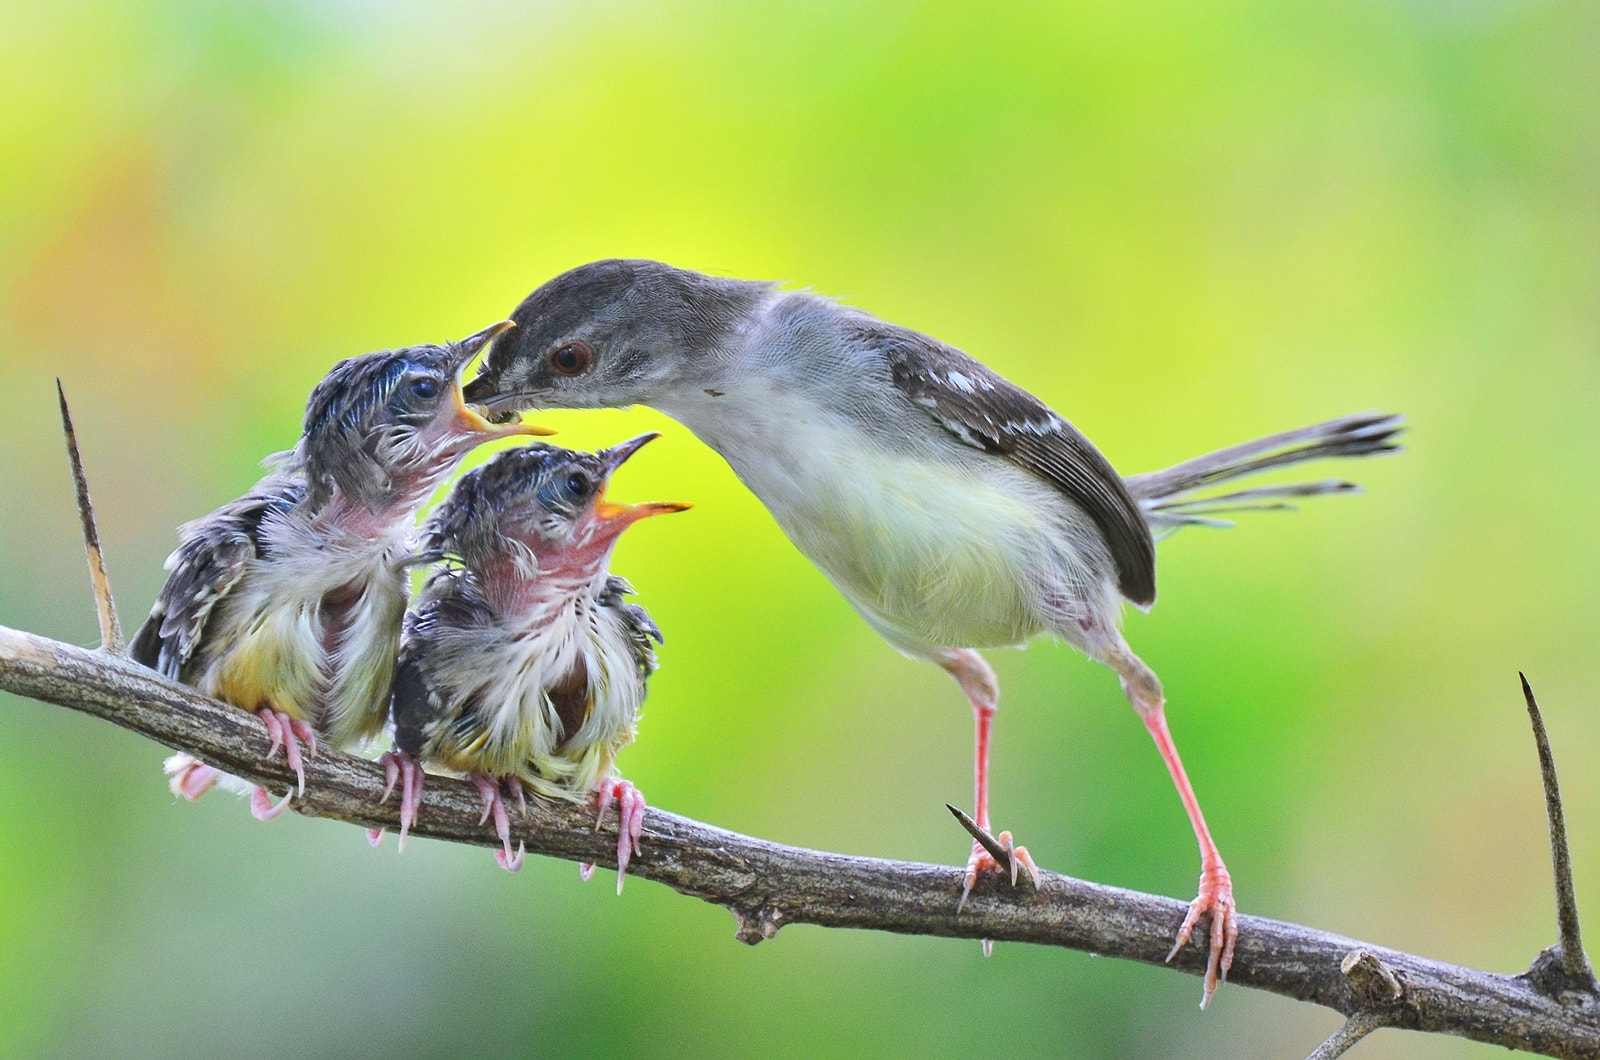 Photograph FEEDING by anas topbgt on 500px